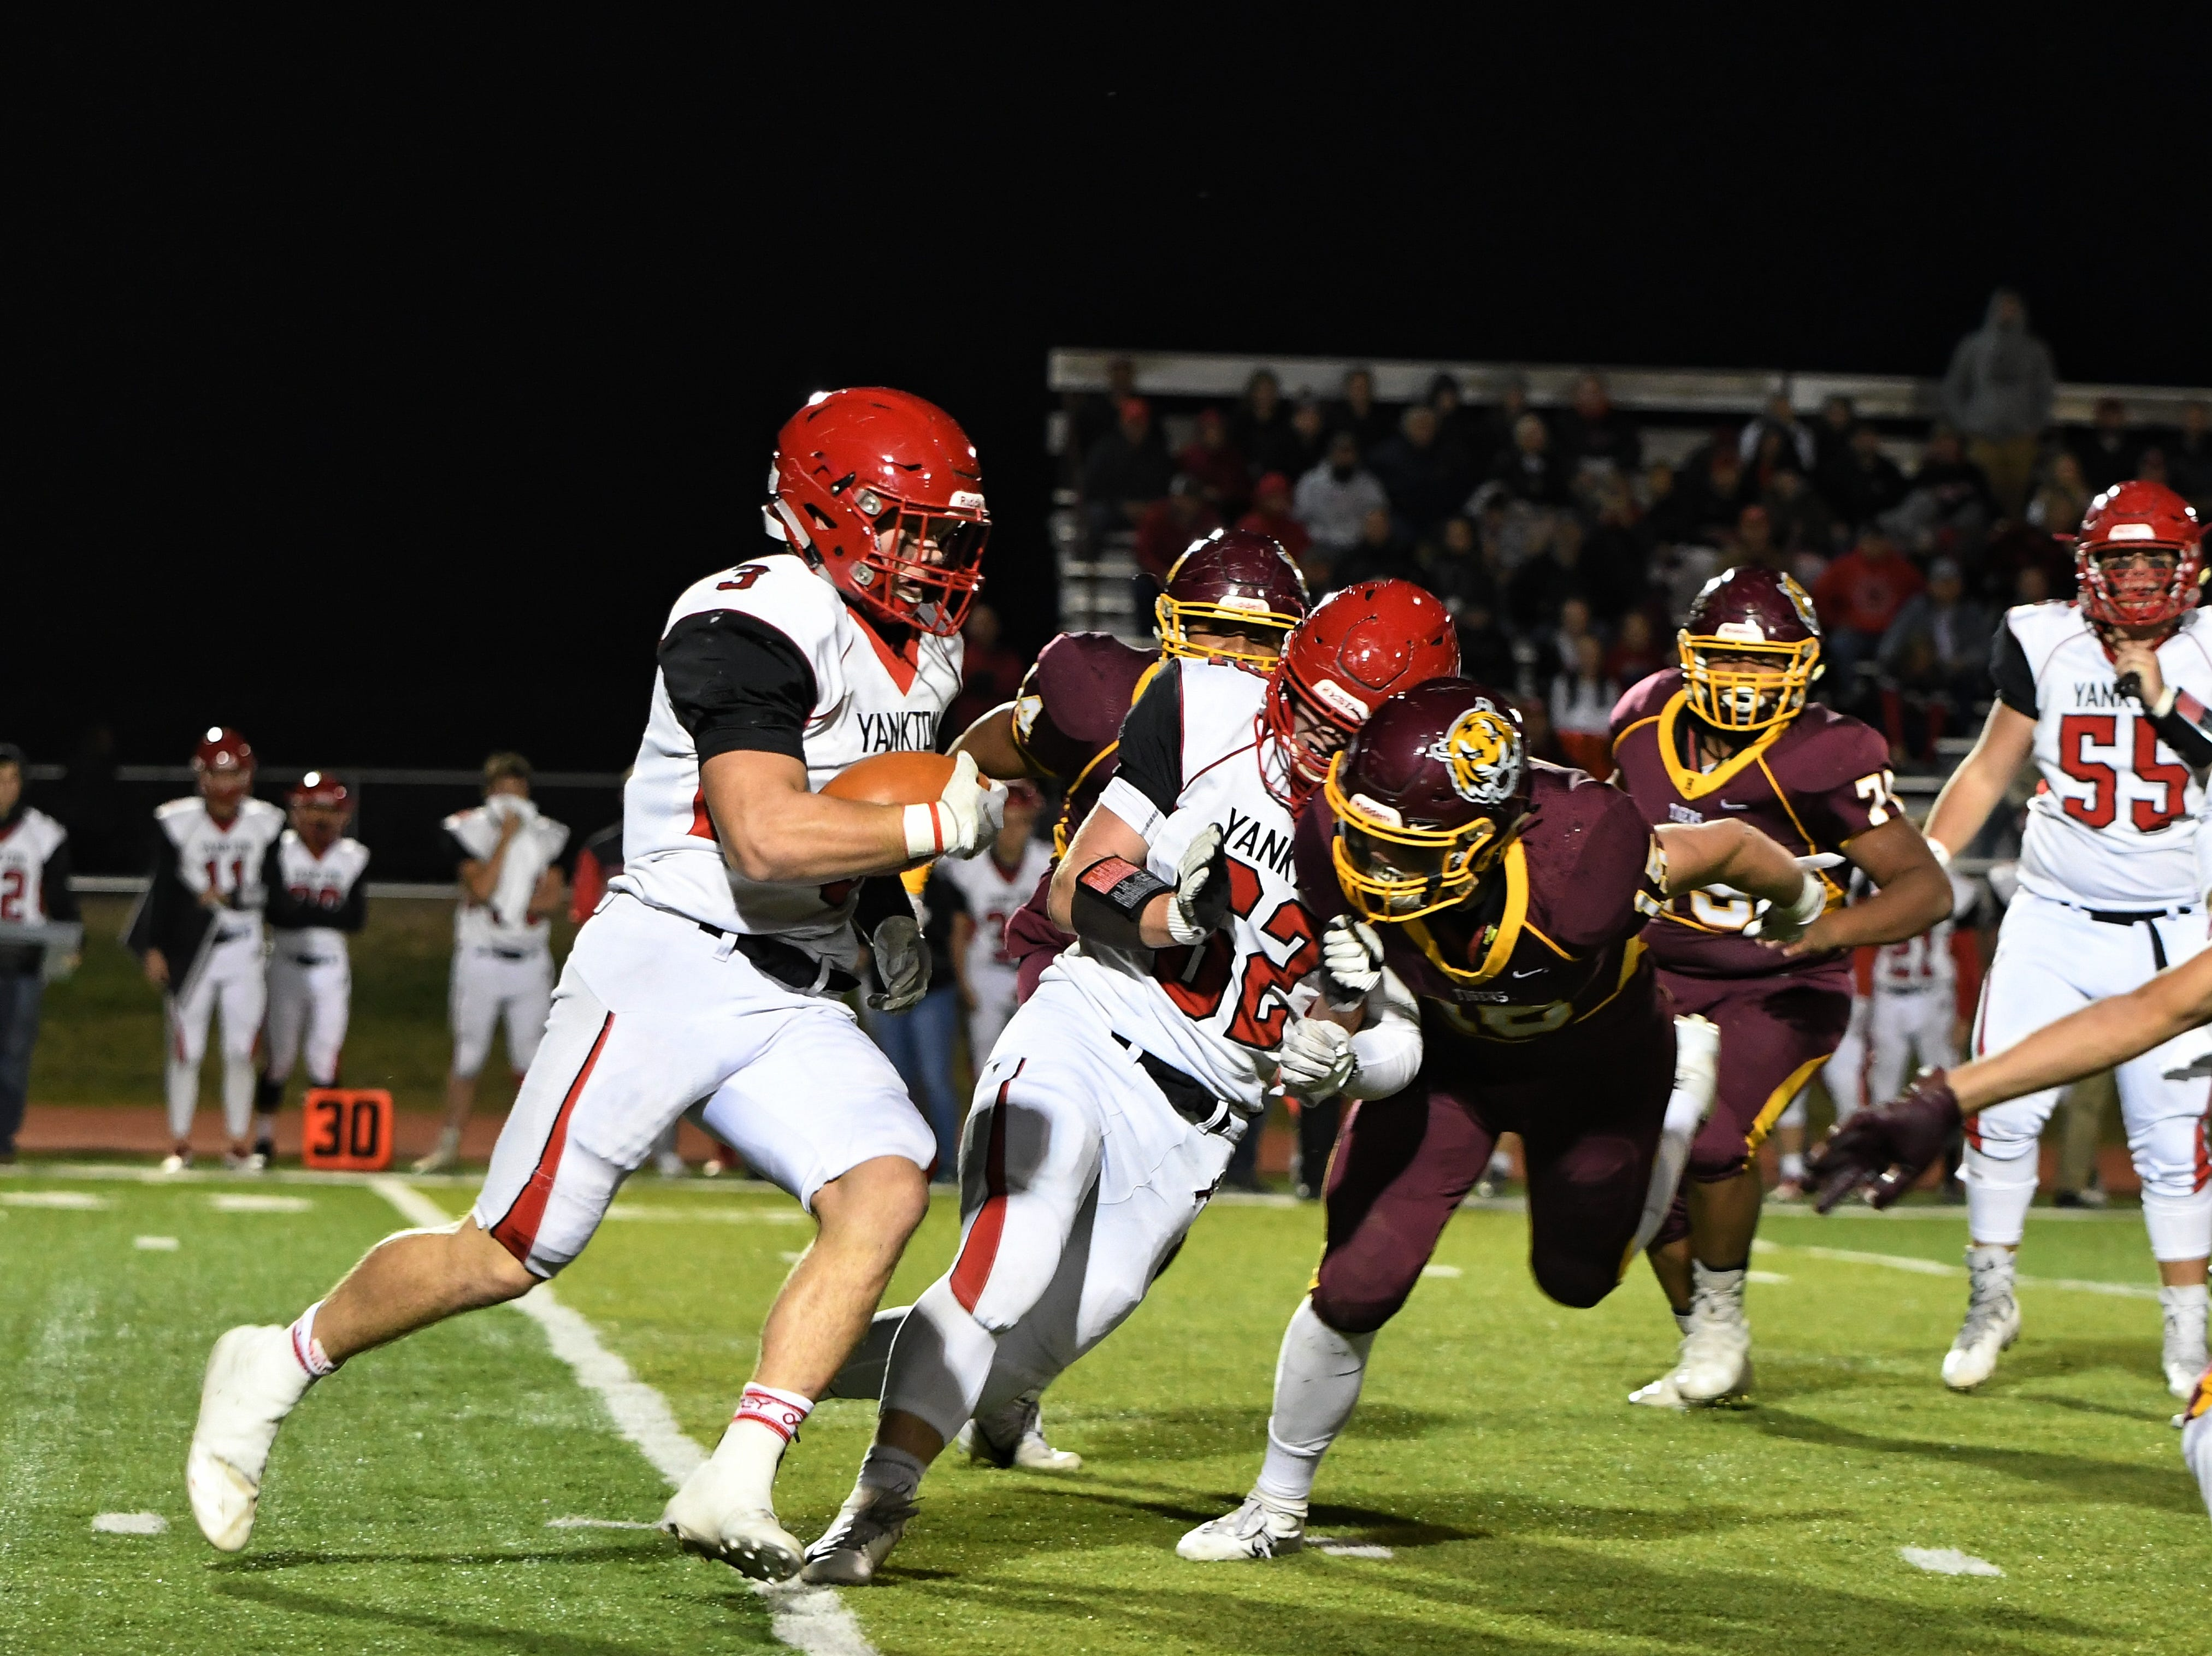 Yankton comes back from 14-0 deficit to beat Harrisburg